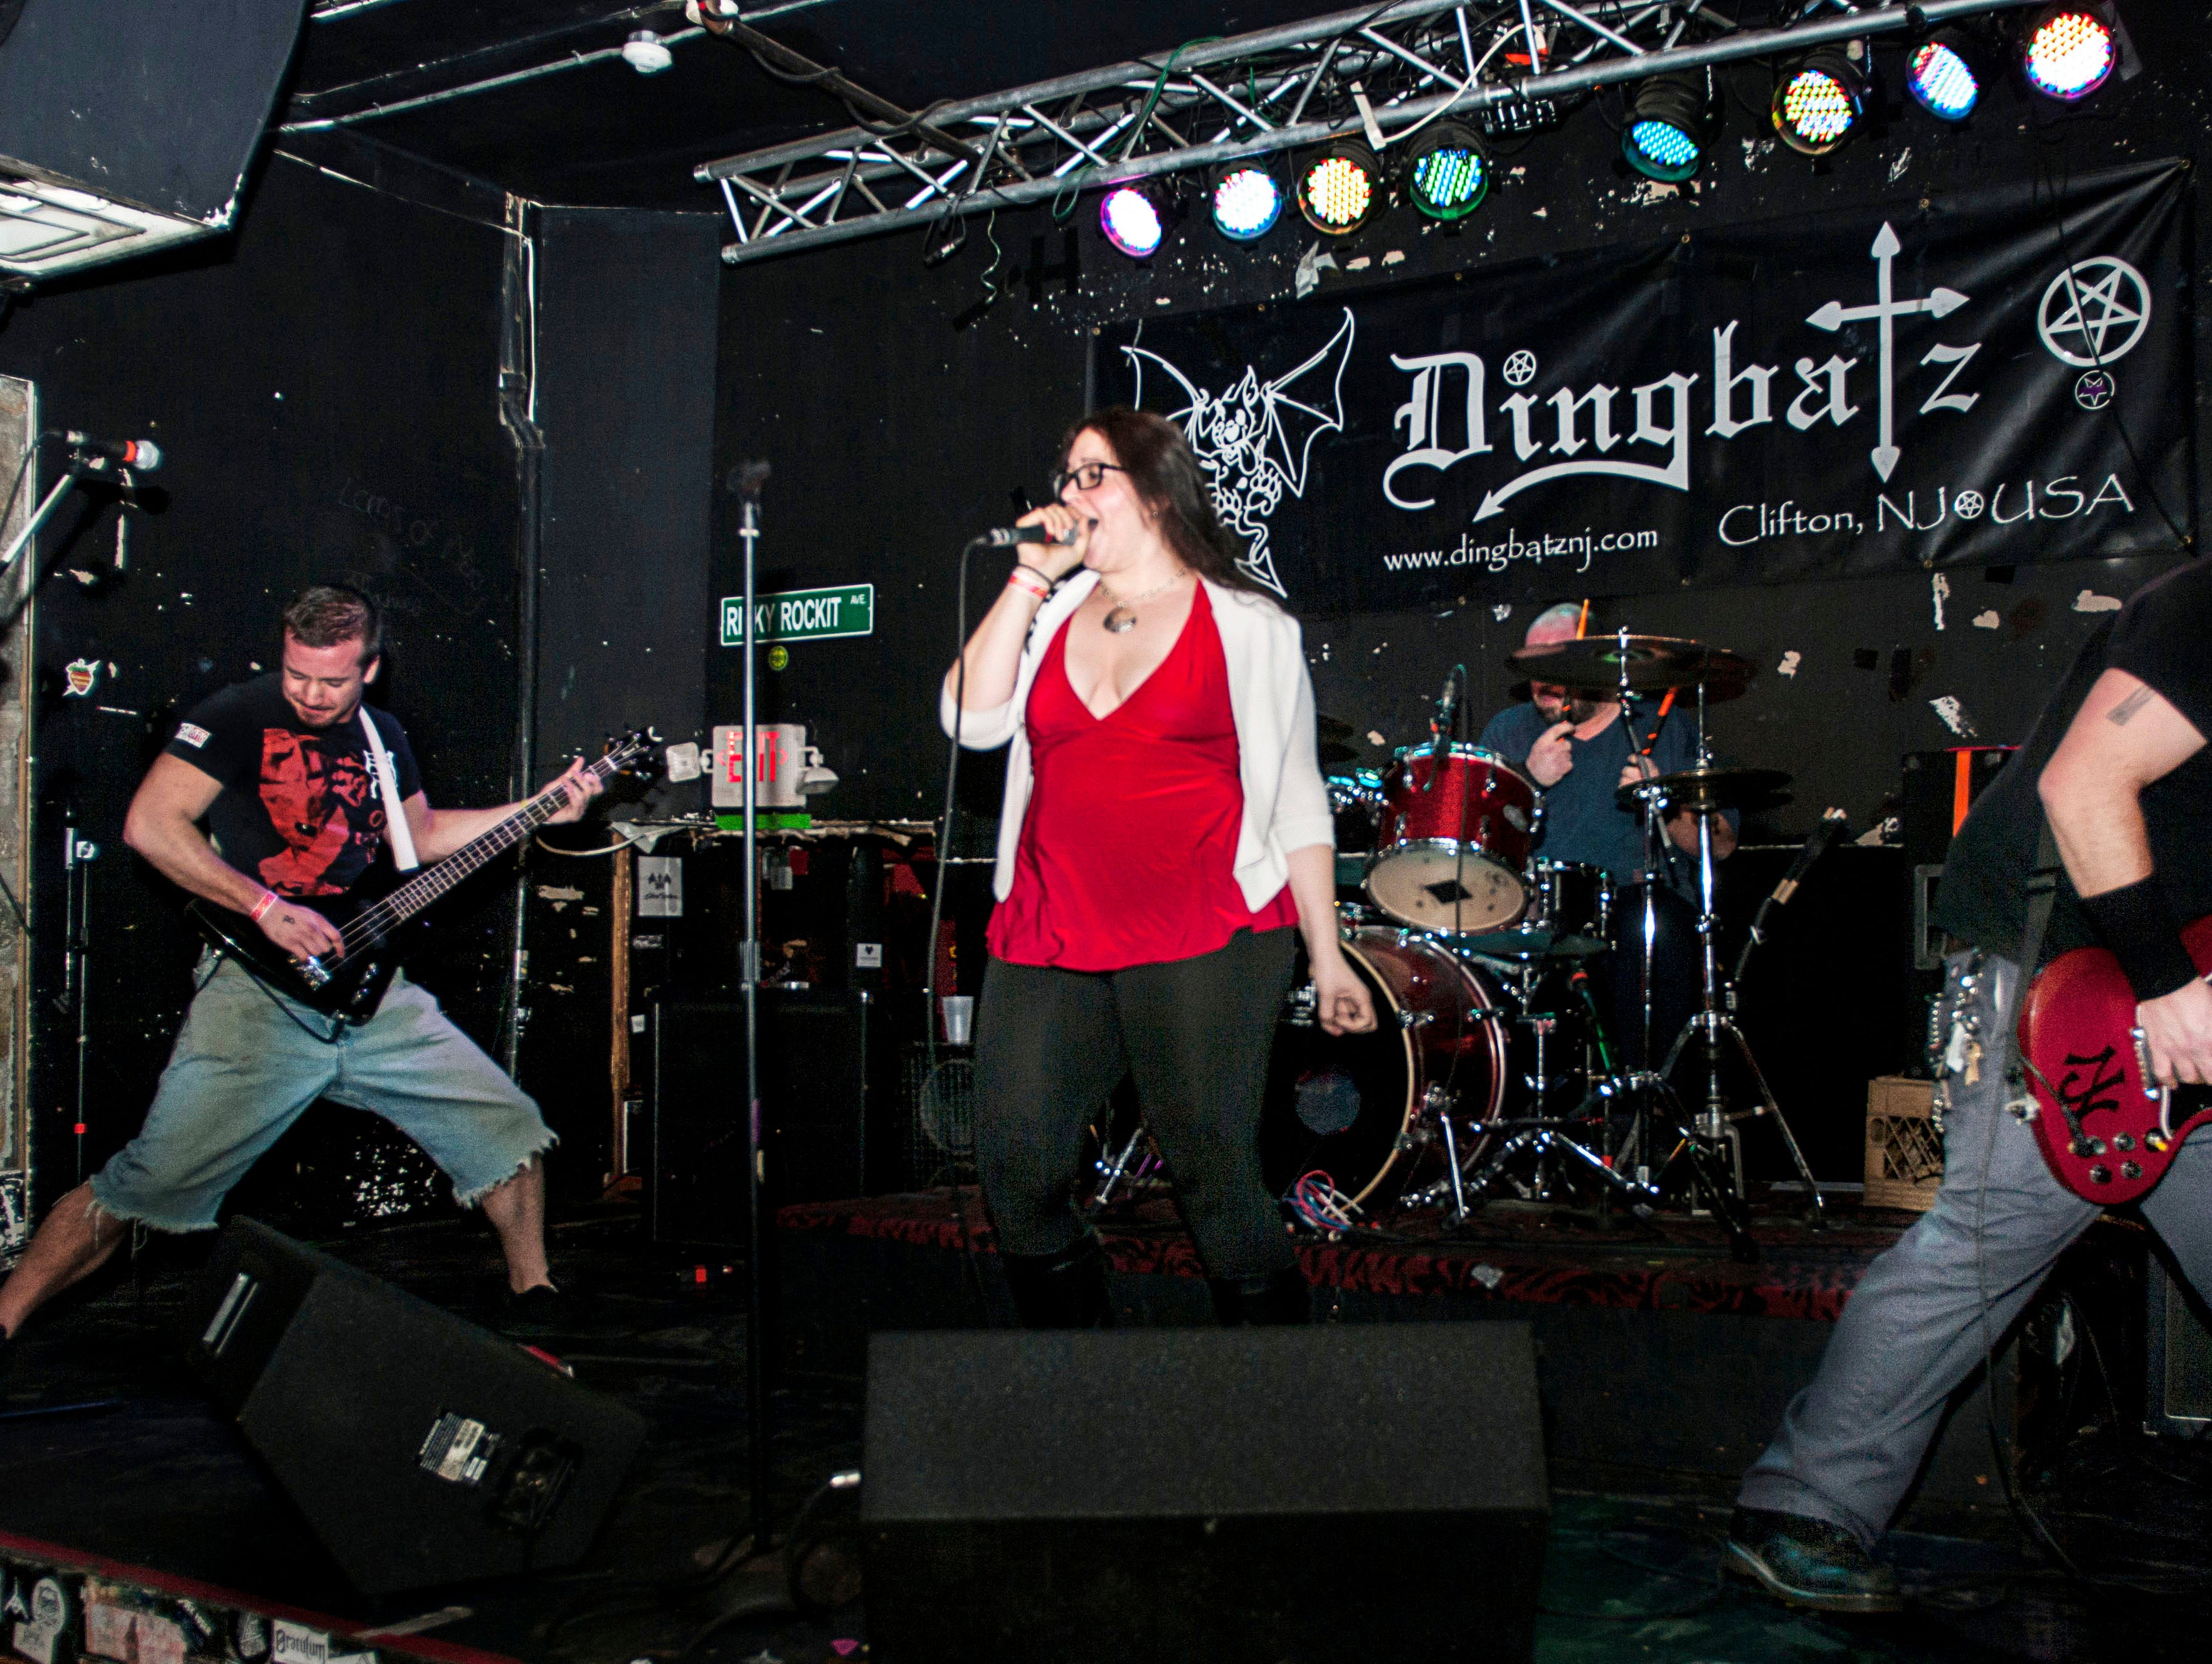 In 2014 Dingbatz hosted a holiday benefit concert where toys were collected to benefit Toys For Tots as part of the admission fee.